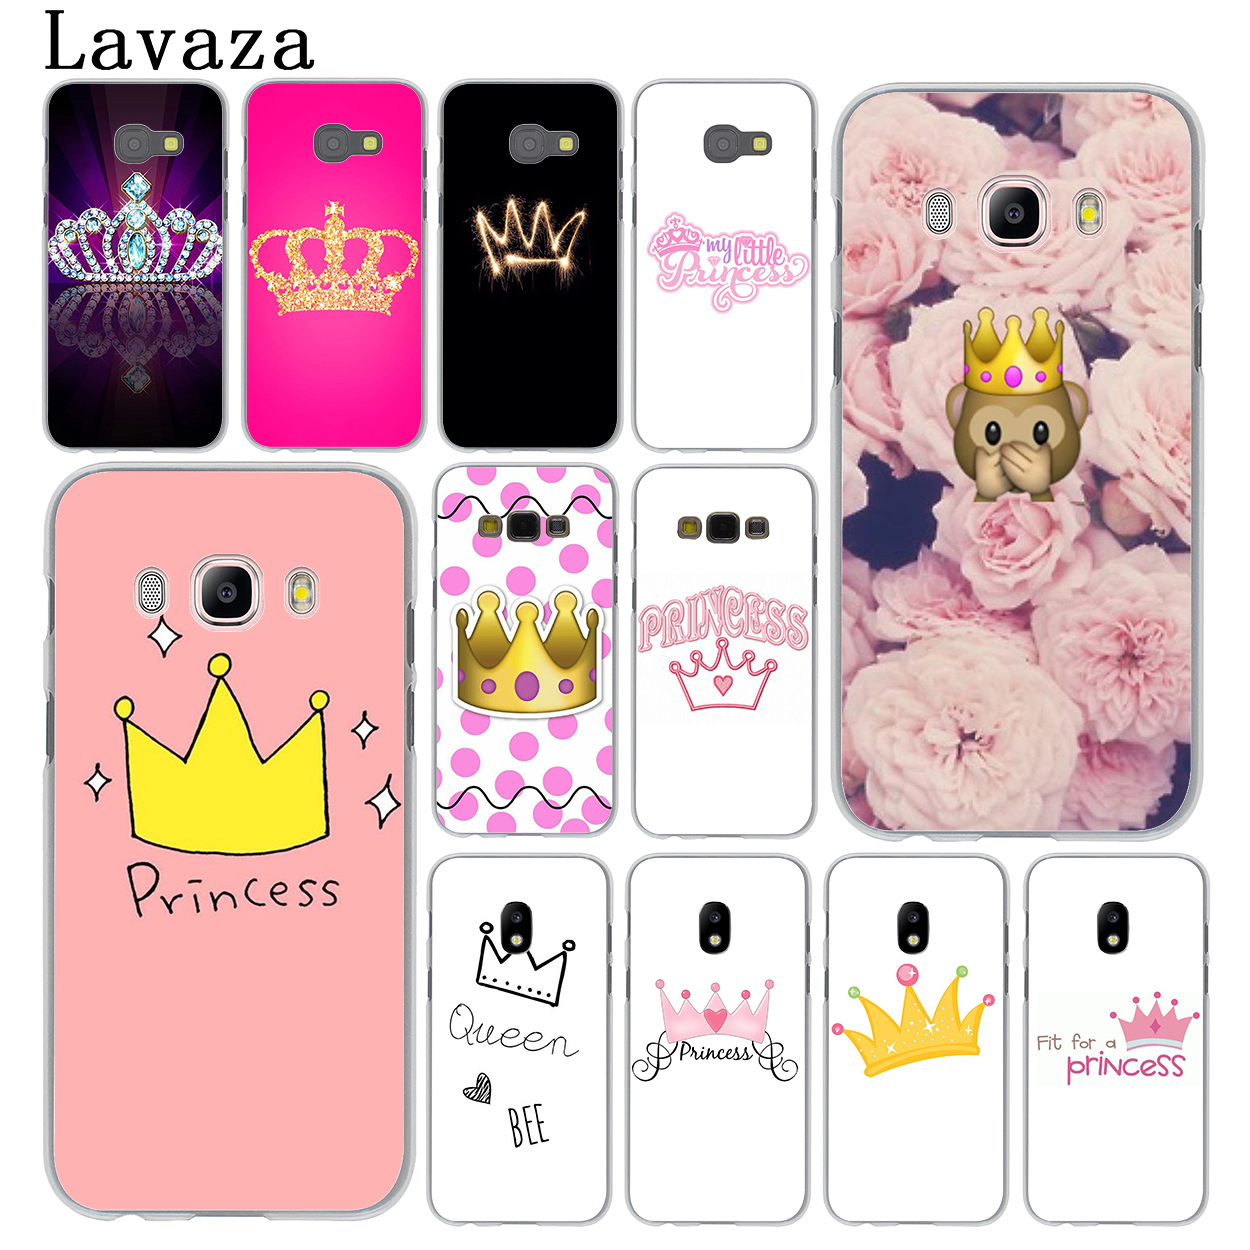 Lavaza PRINCESS Queen boss crown king Hard Phone Cover Case for Samsung Galaxy J3 J1 J7 J5 2015 2016 2017 J2 Pro Ace J5 J7 Prime